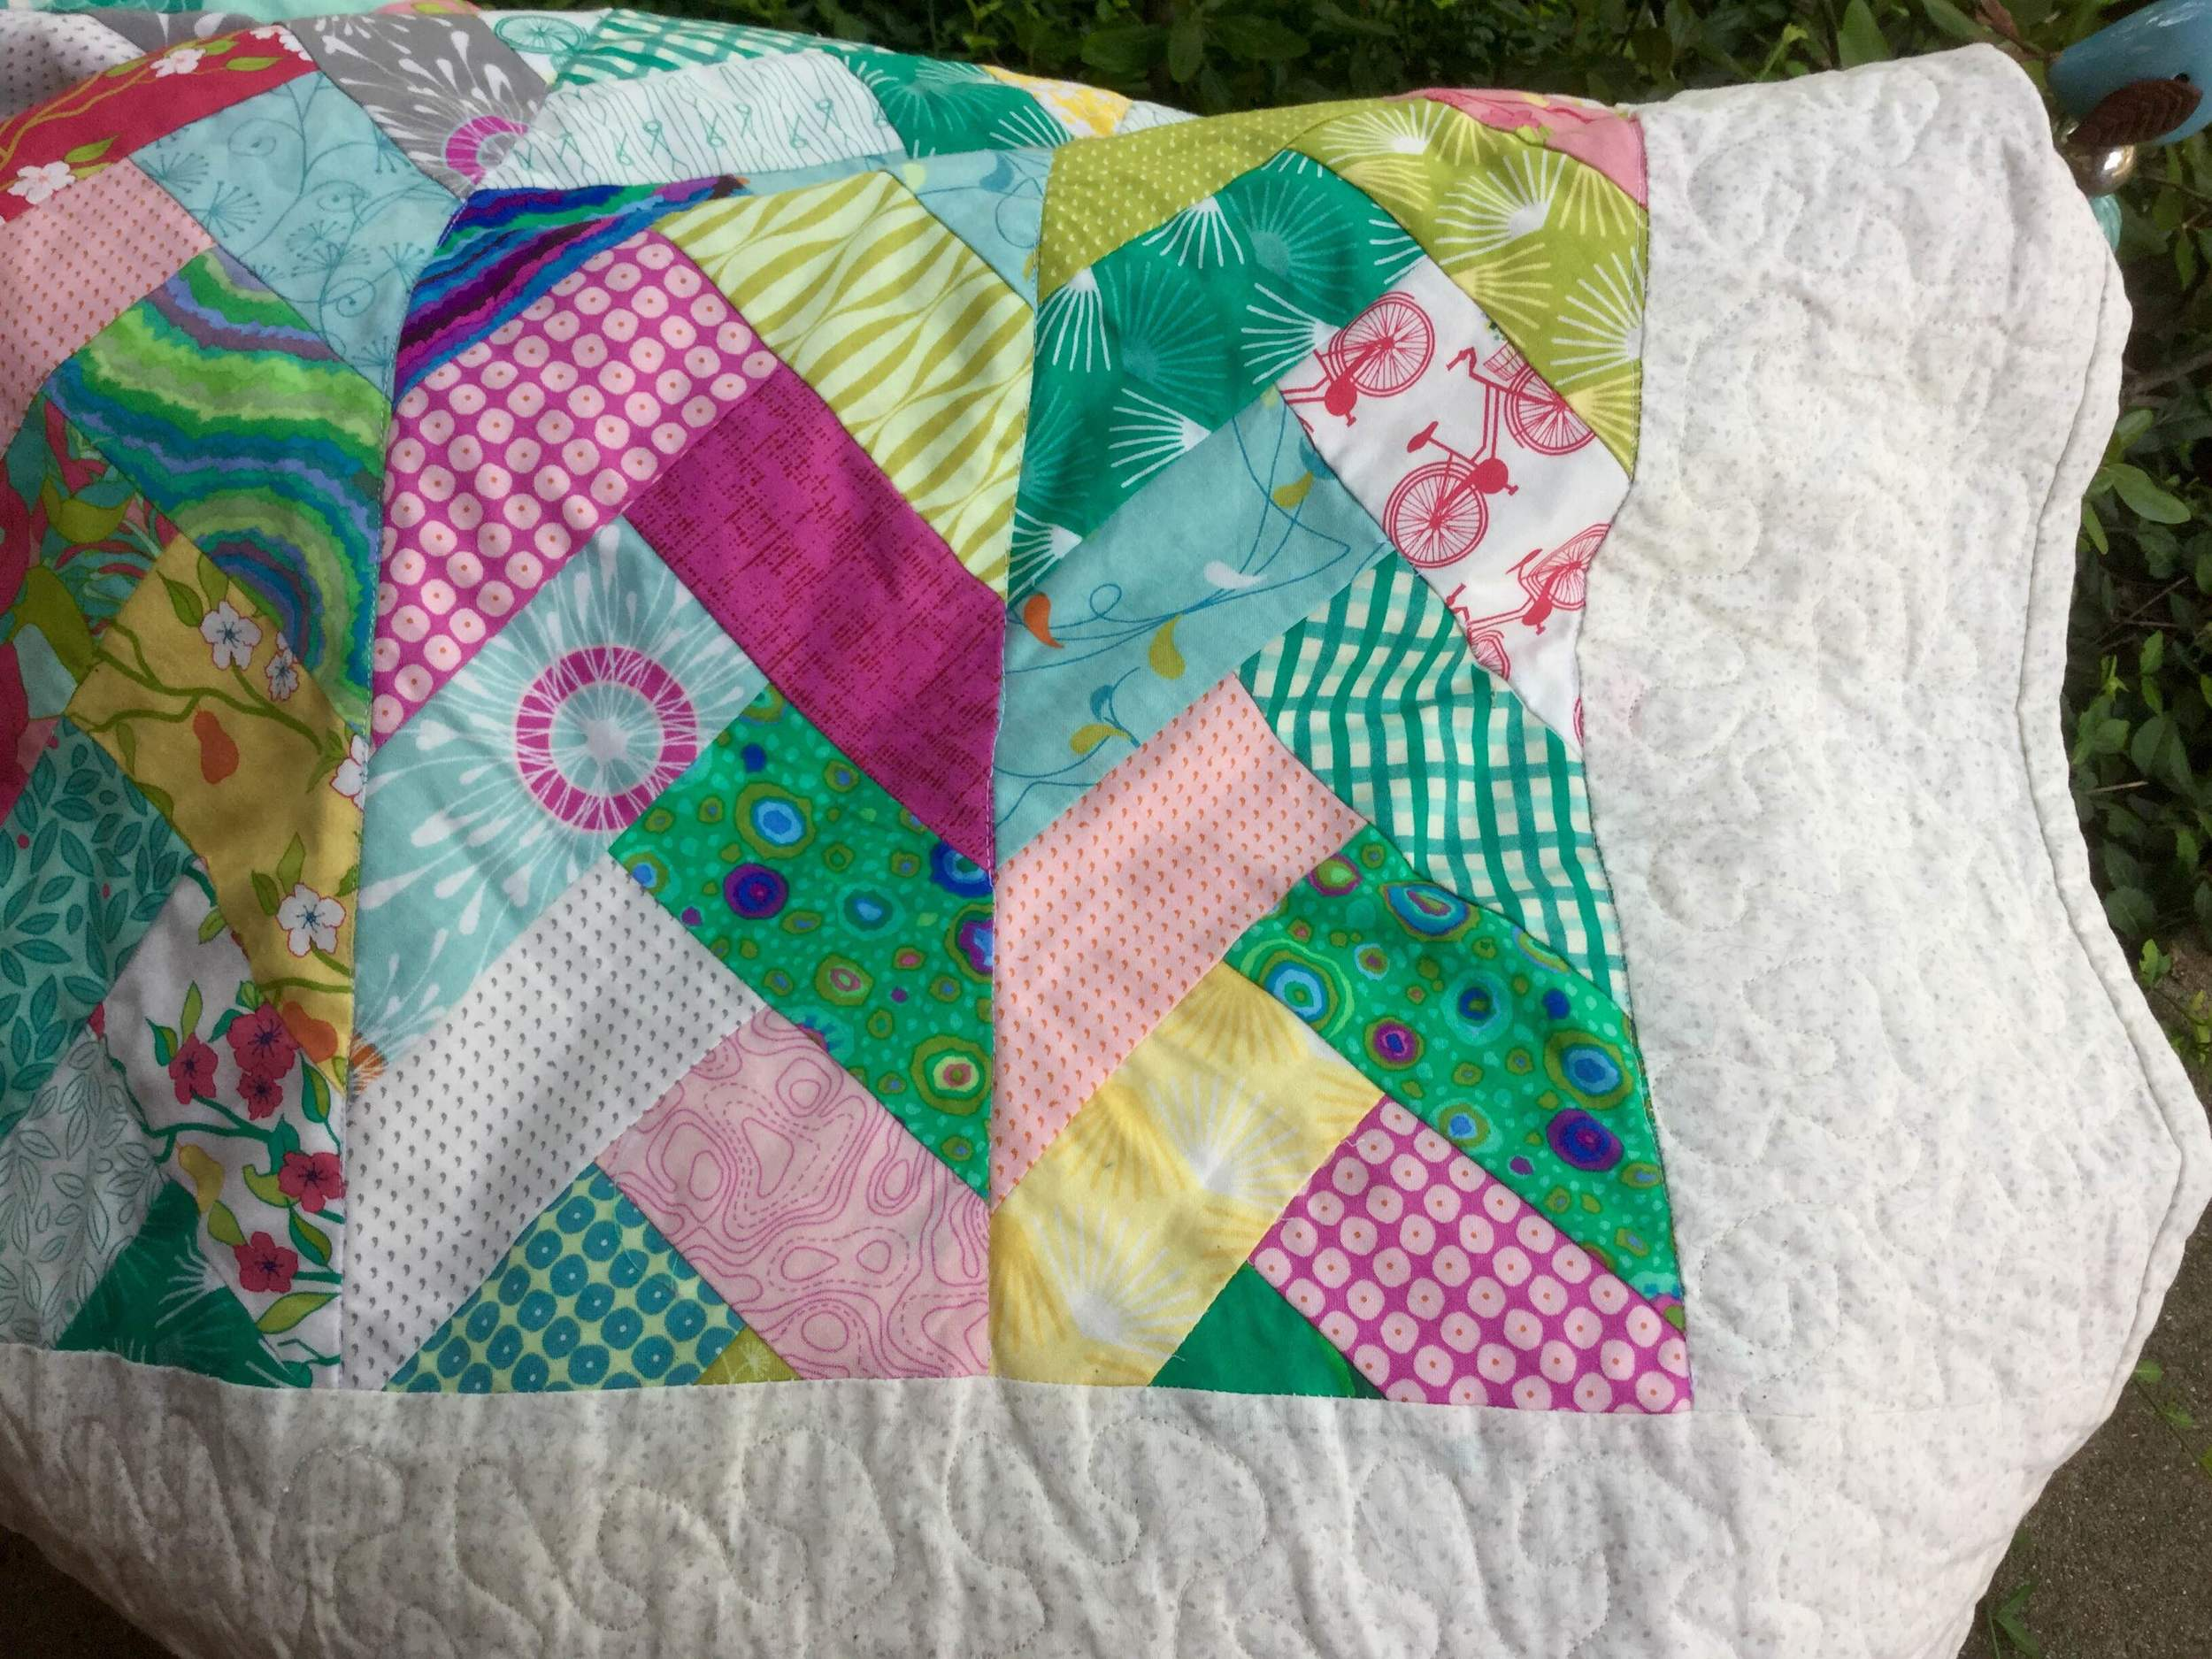 I used the walking foot to stitch in the ditch on the seams of the 8 braids. I free motioned the borders. This was how it was shown in the Pinterest picture.